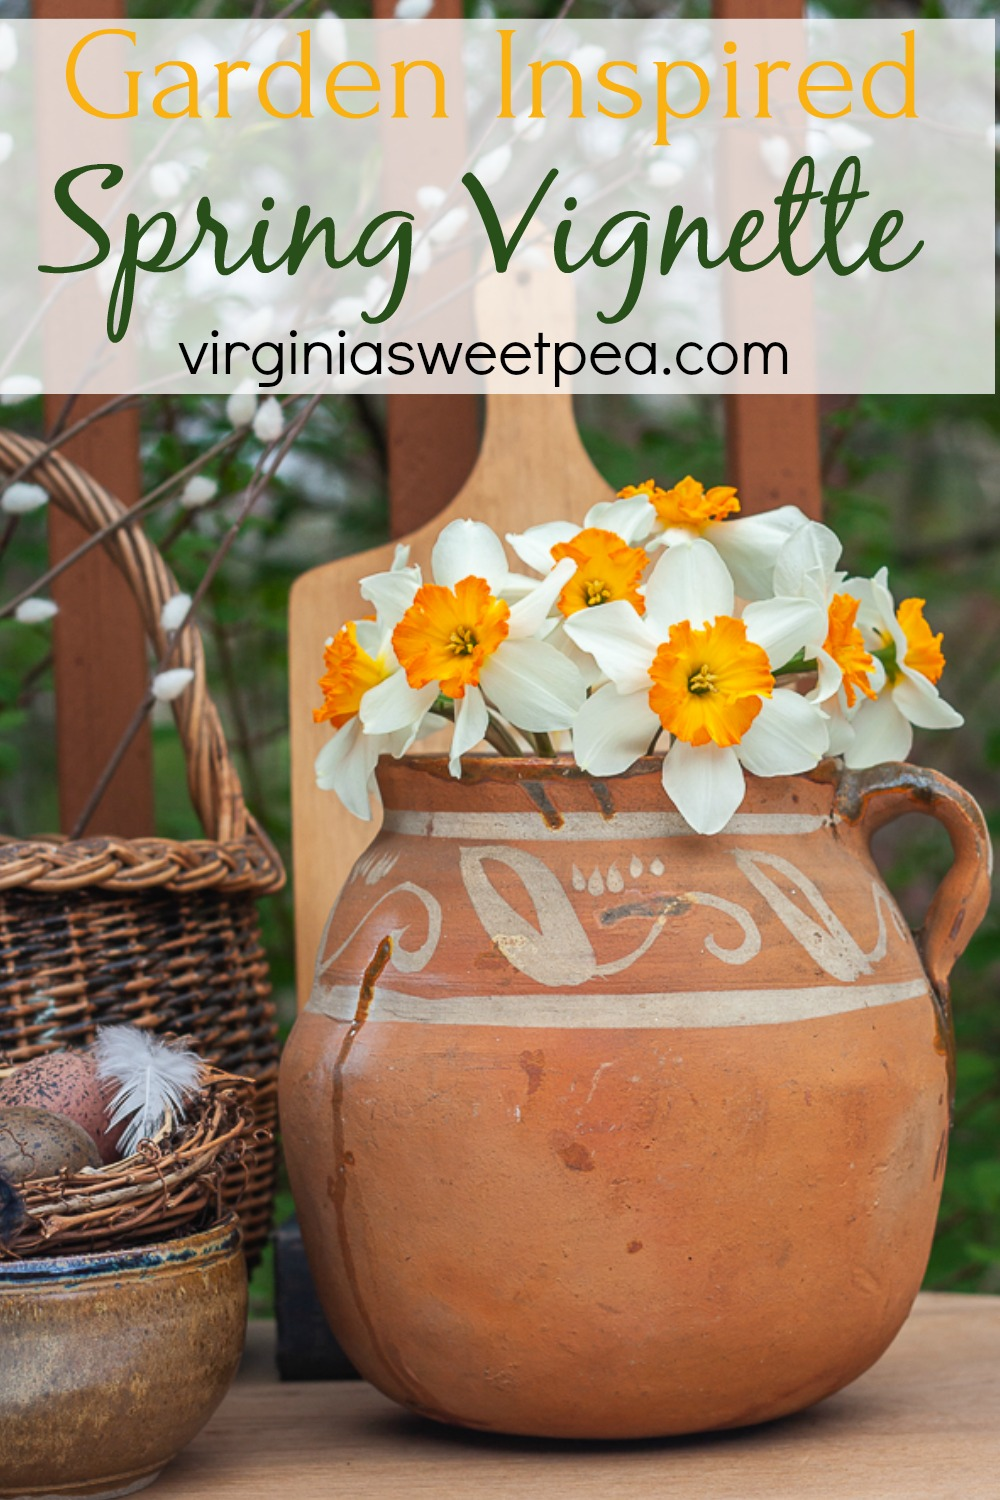 Garden Inspired Spring Vignette - Get tips for creating a garden themed spring vignette to enjoy in your home. #springvignette #springdecor #gardenthemedspringdecor #gardeninspired #gardeninspireddecor via @spaula